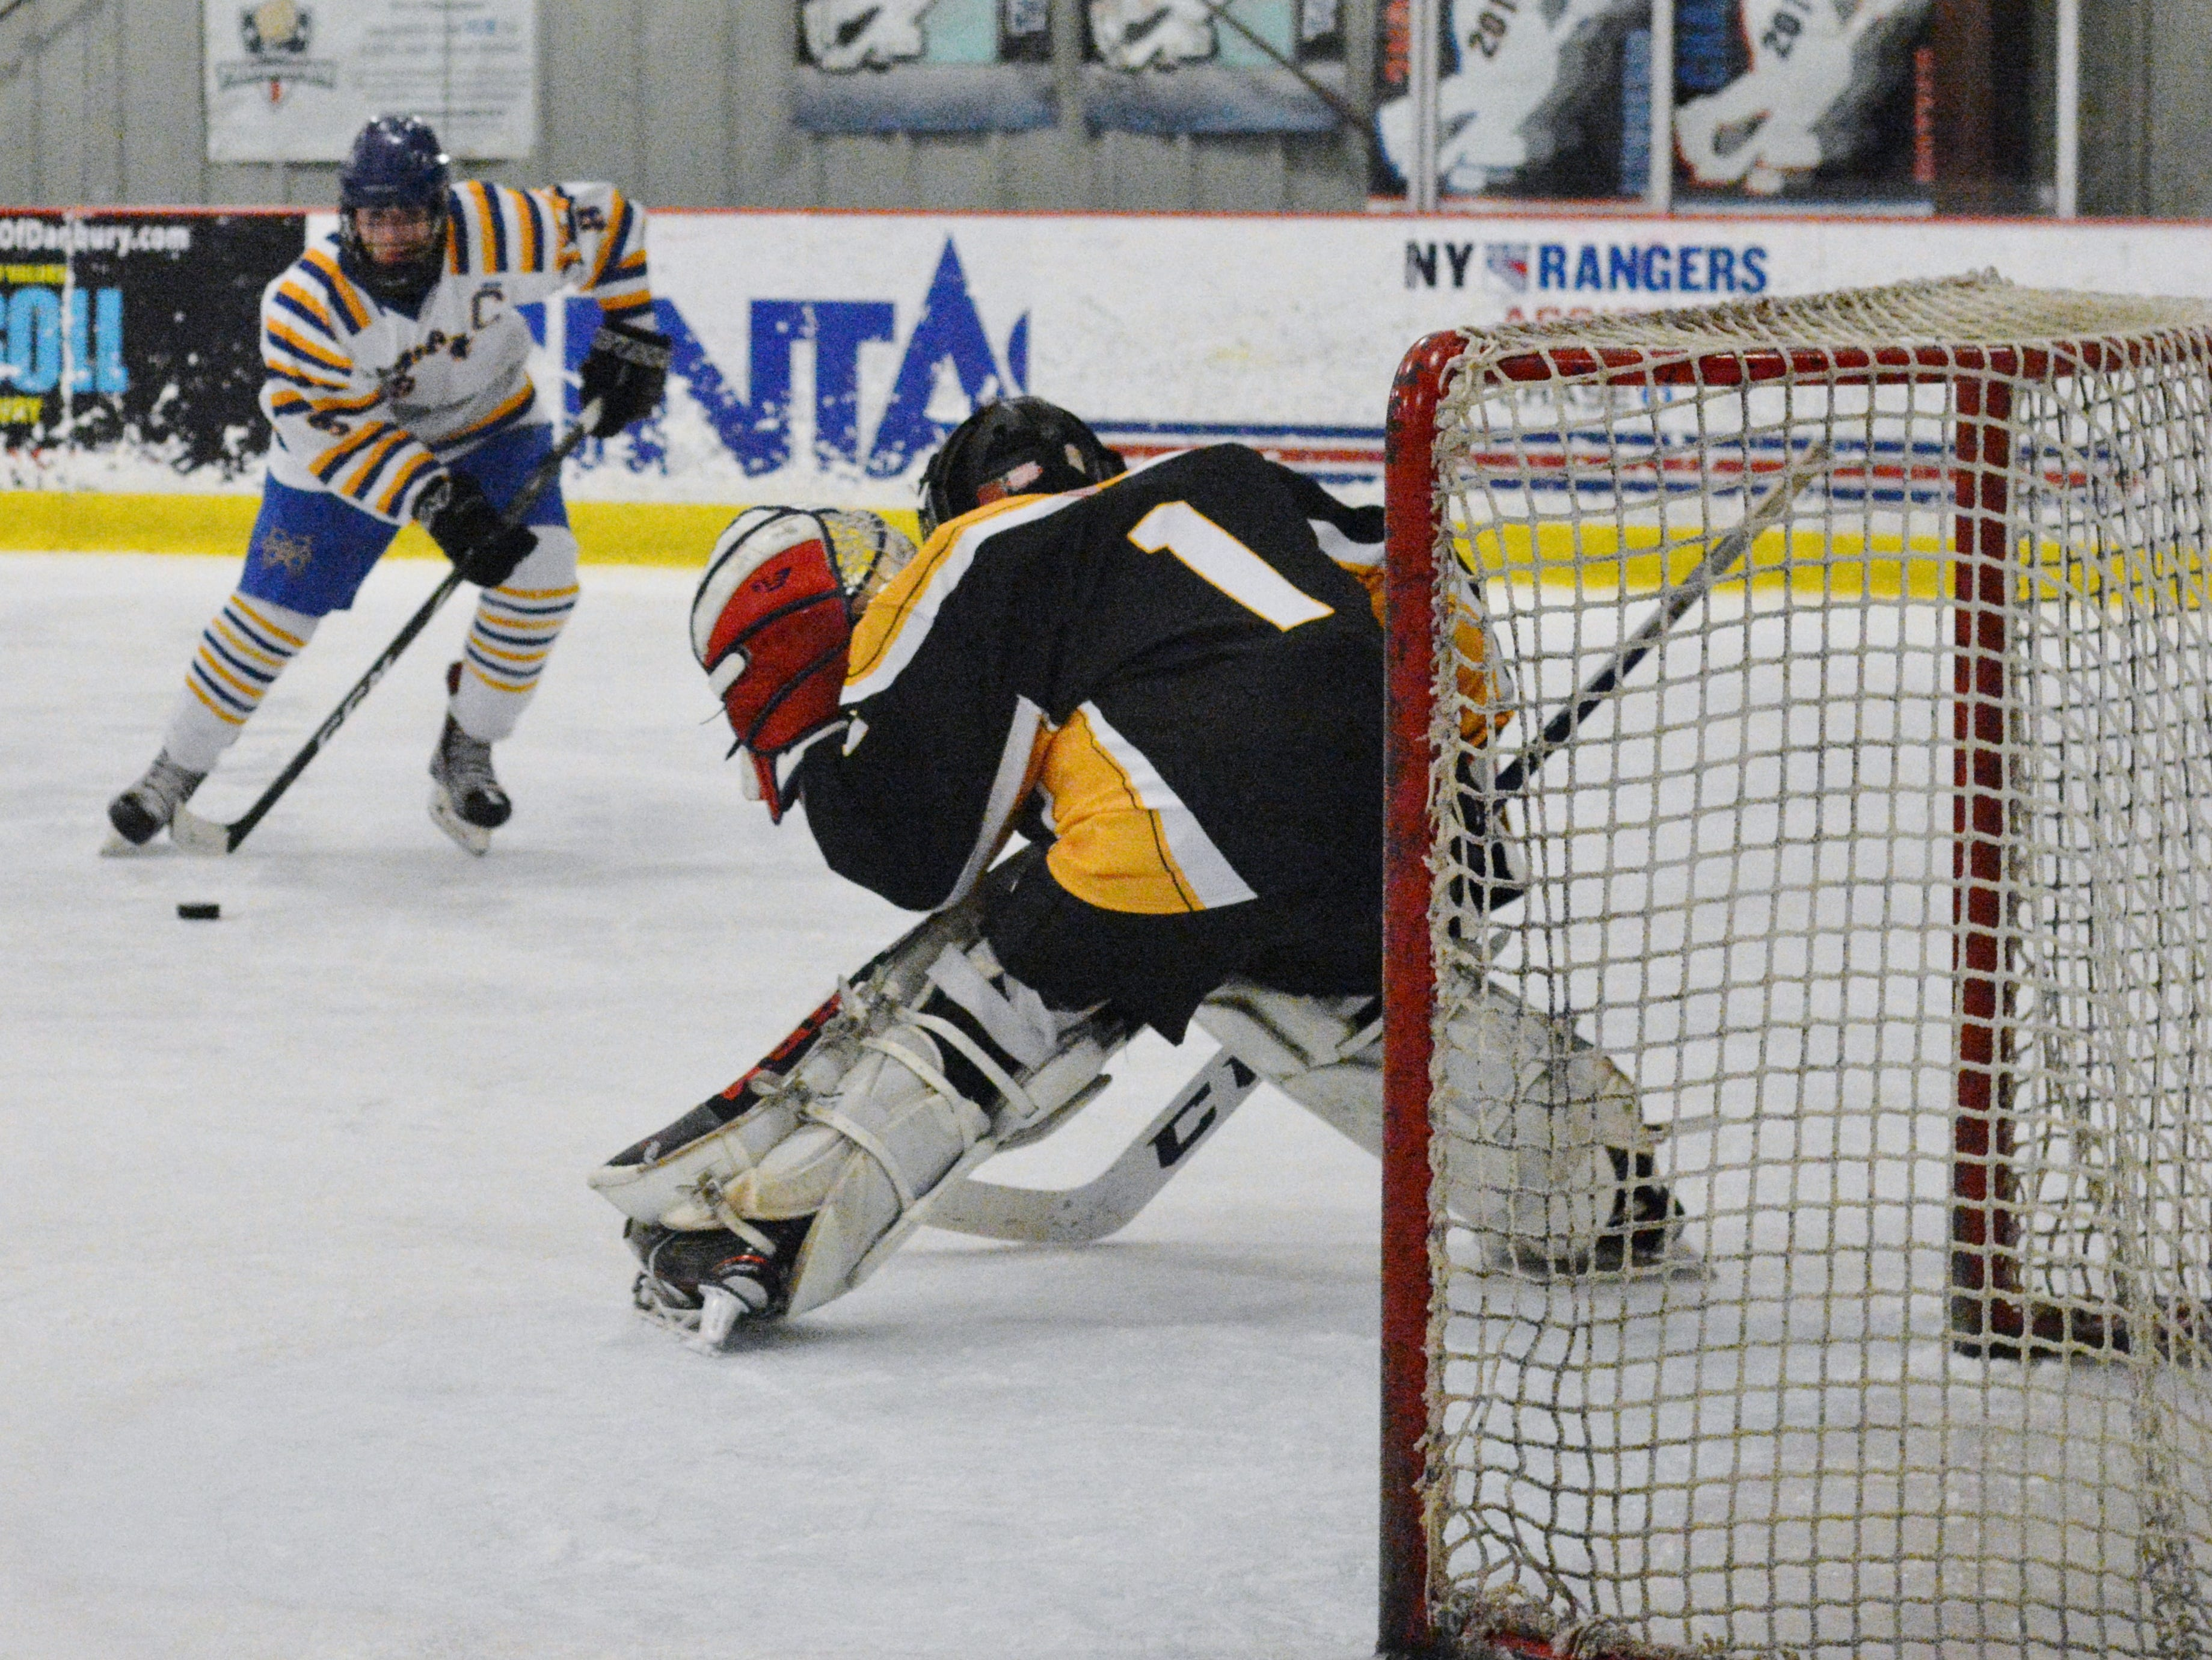 Brian O'Shea (9) scored a hat trick, helping Mahopac post a 4-2 win over Cortlandt in a Section 1 Division I opening-round game on Friday, Feb. 15, 2019 at Brewster Ice Arena